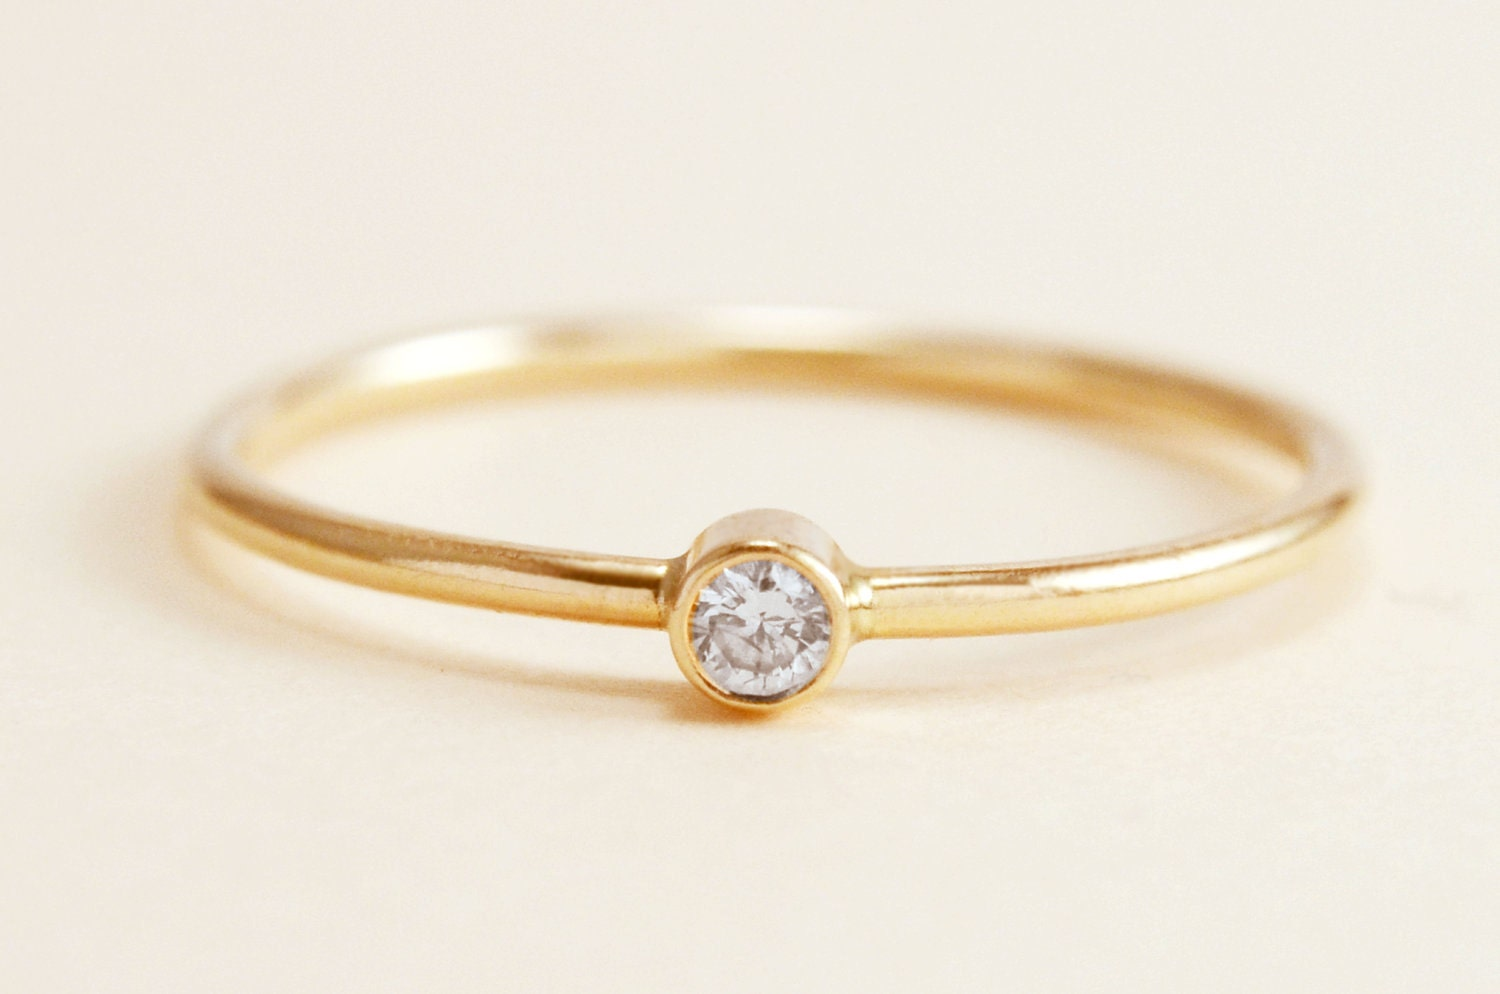 Simple Diamond Ring in 14k Gold by peachesandcherries on Etsy